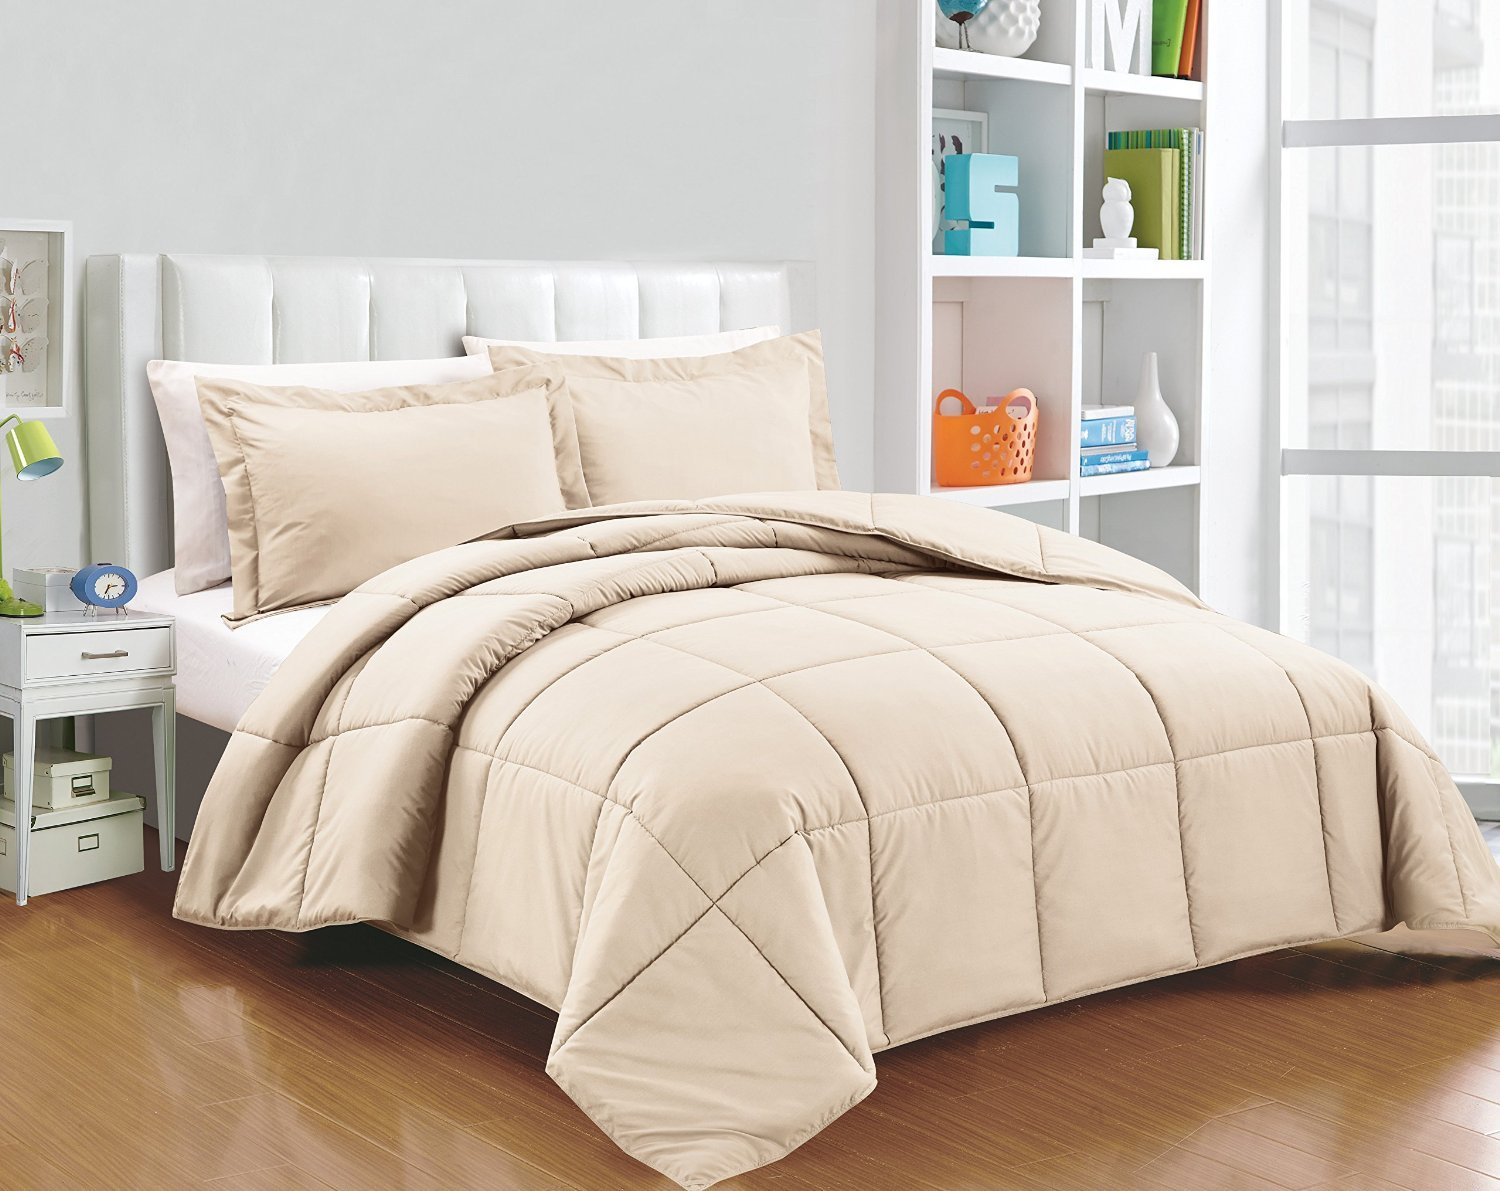 Chezmoi Collection 3-piece Down Alternative Comforter Set Queen, Khaki)